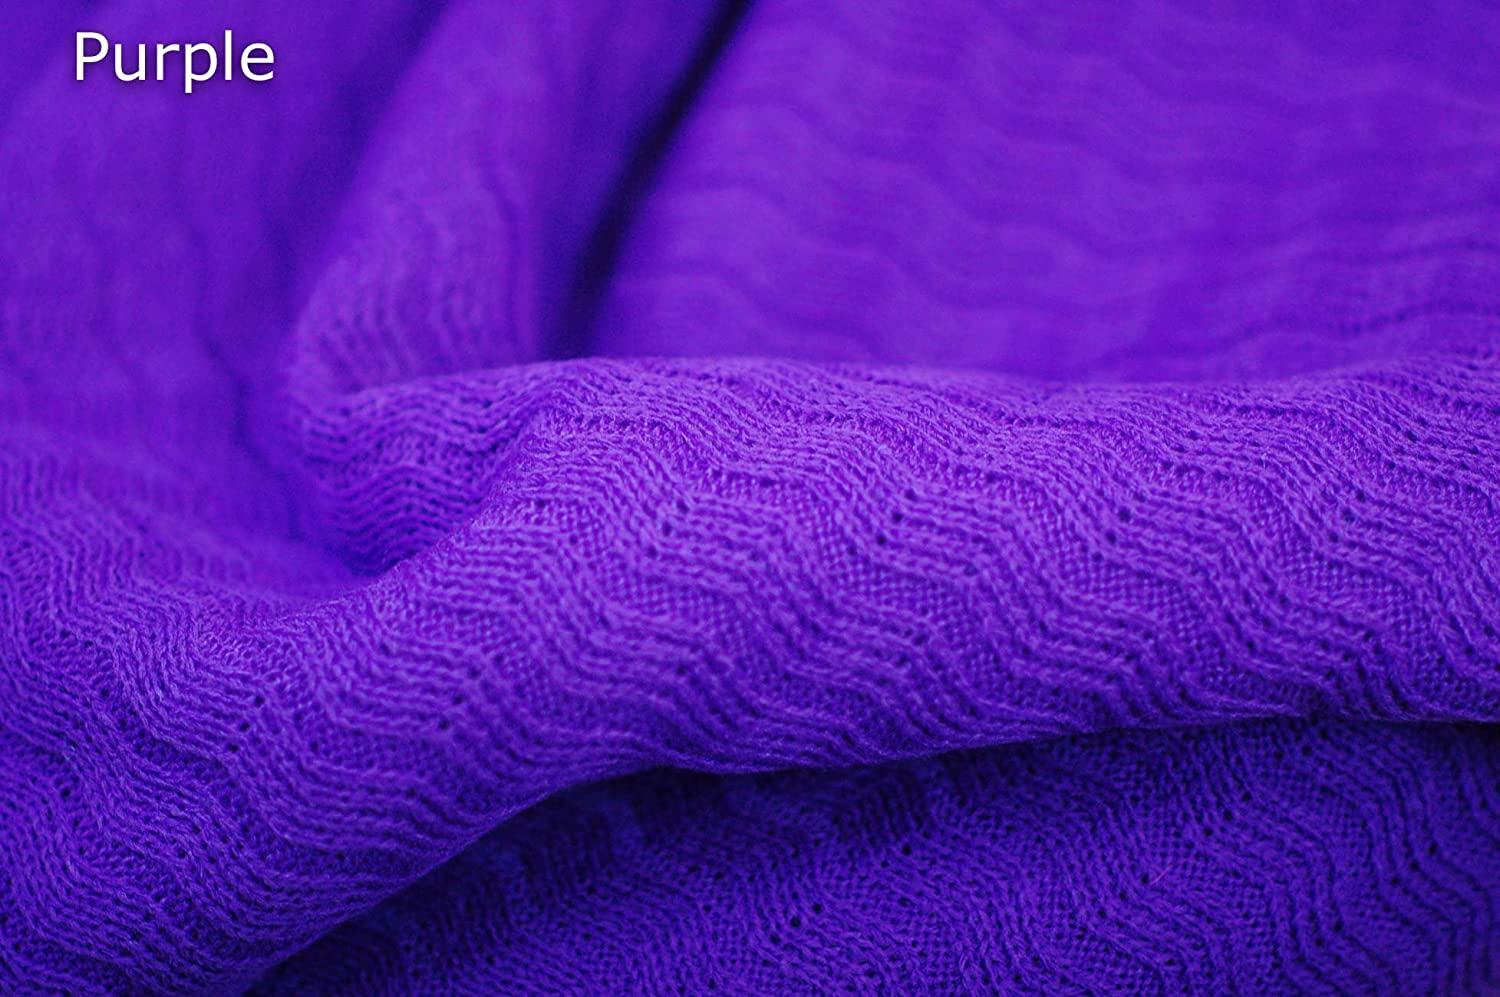 Neotrims Plain Solid Self Patterned Knit Rib Jersey Craft Fabric Material By The Yard. 20 Colours to Choose from, for Apparel, Crafts or Photography Backdrop. Unusual Textured Pattern with Racked Zig Zag Chevron Effect, Beautiful!